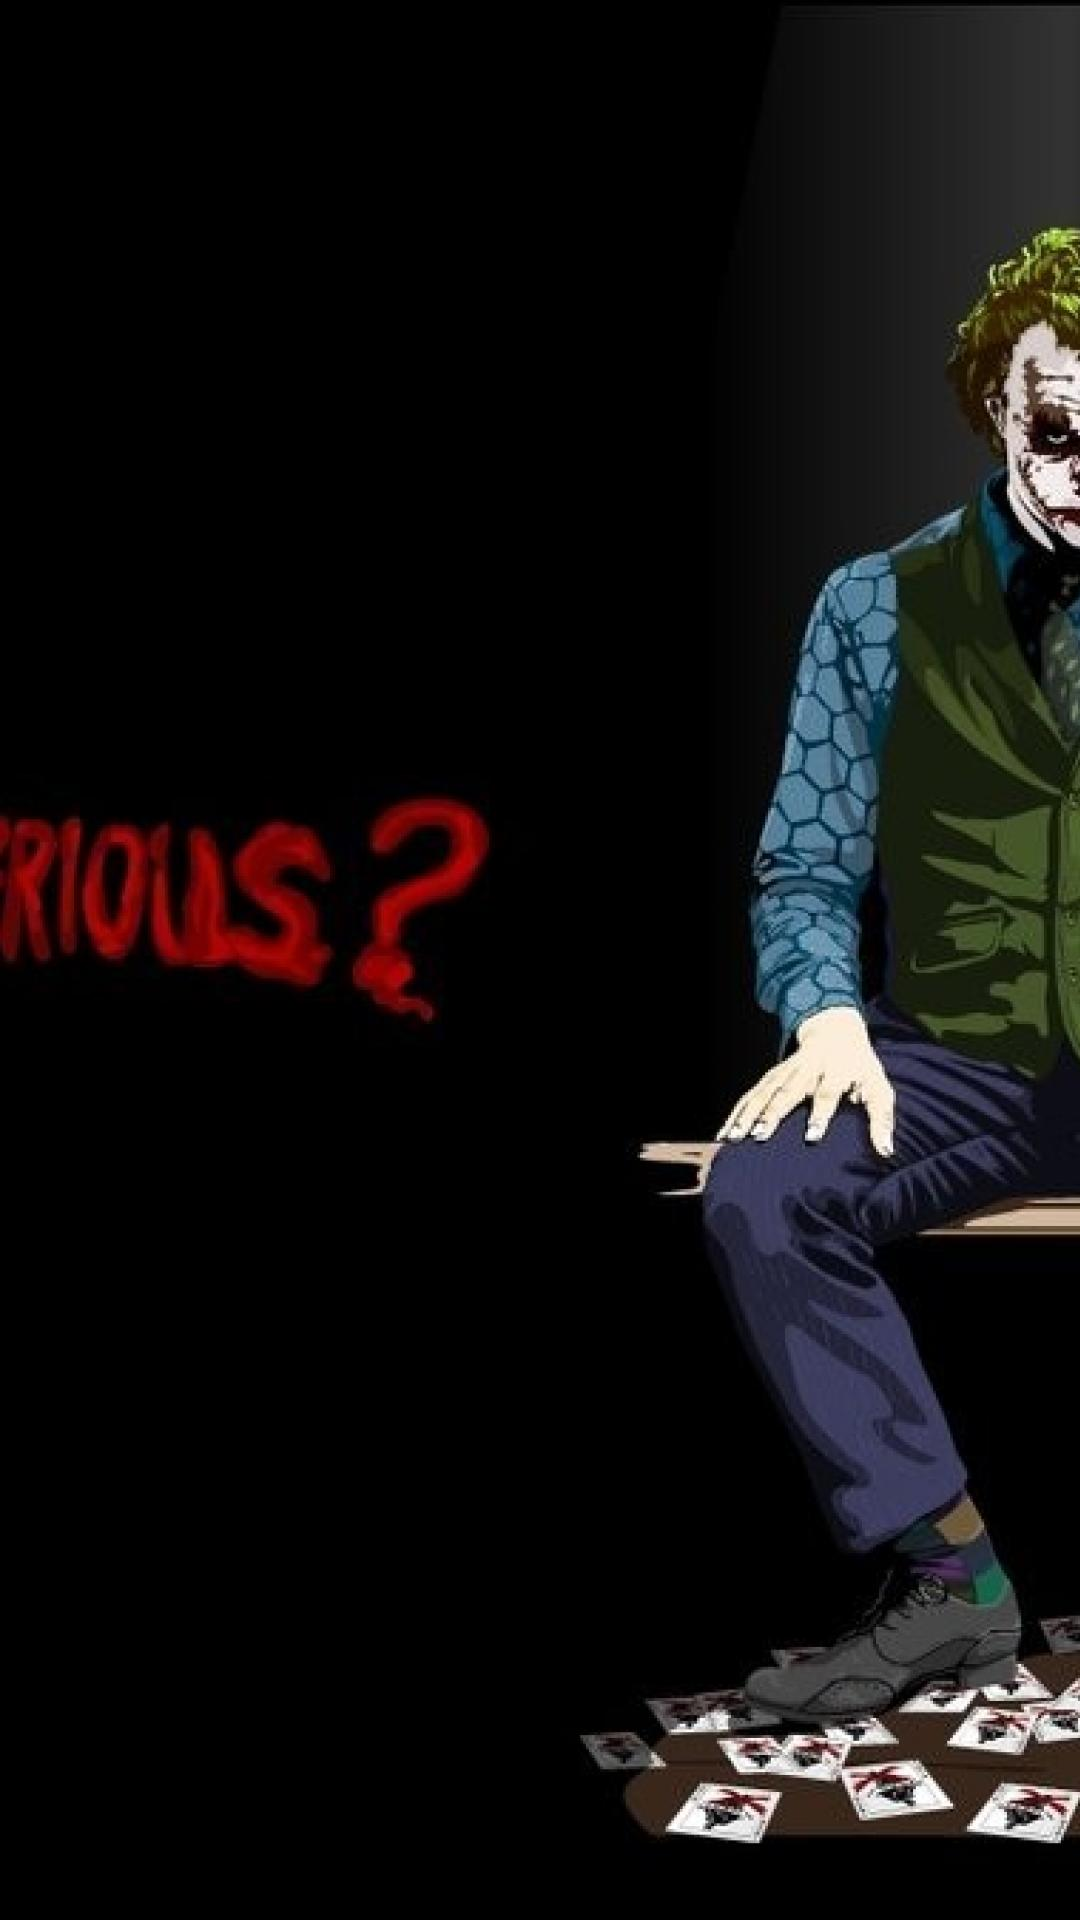 joker wallpaper for windows phone - wallpapersafari